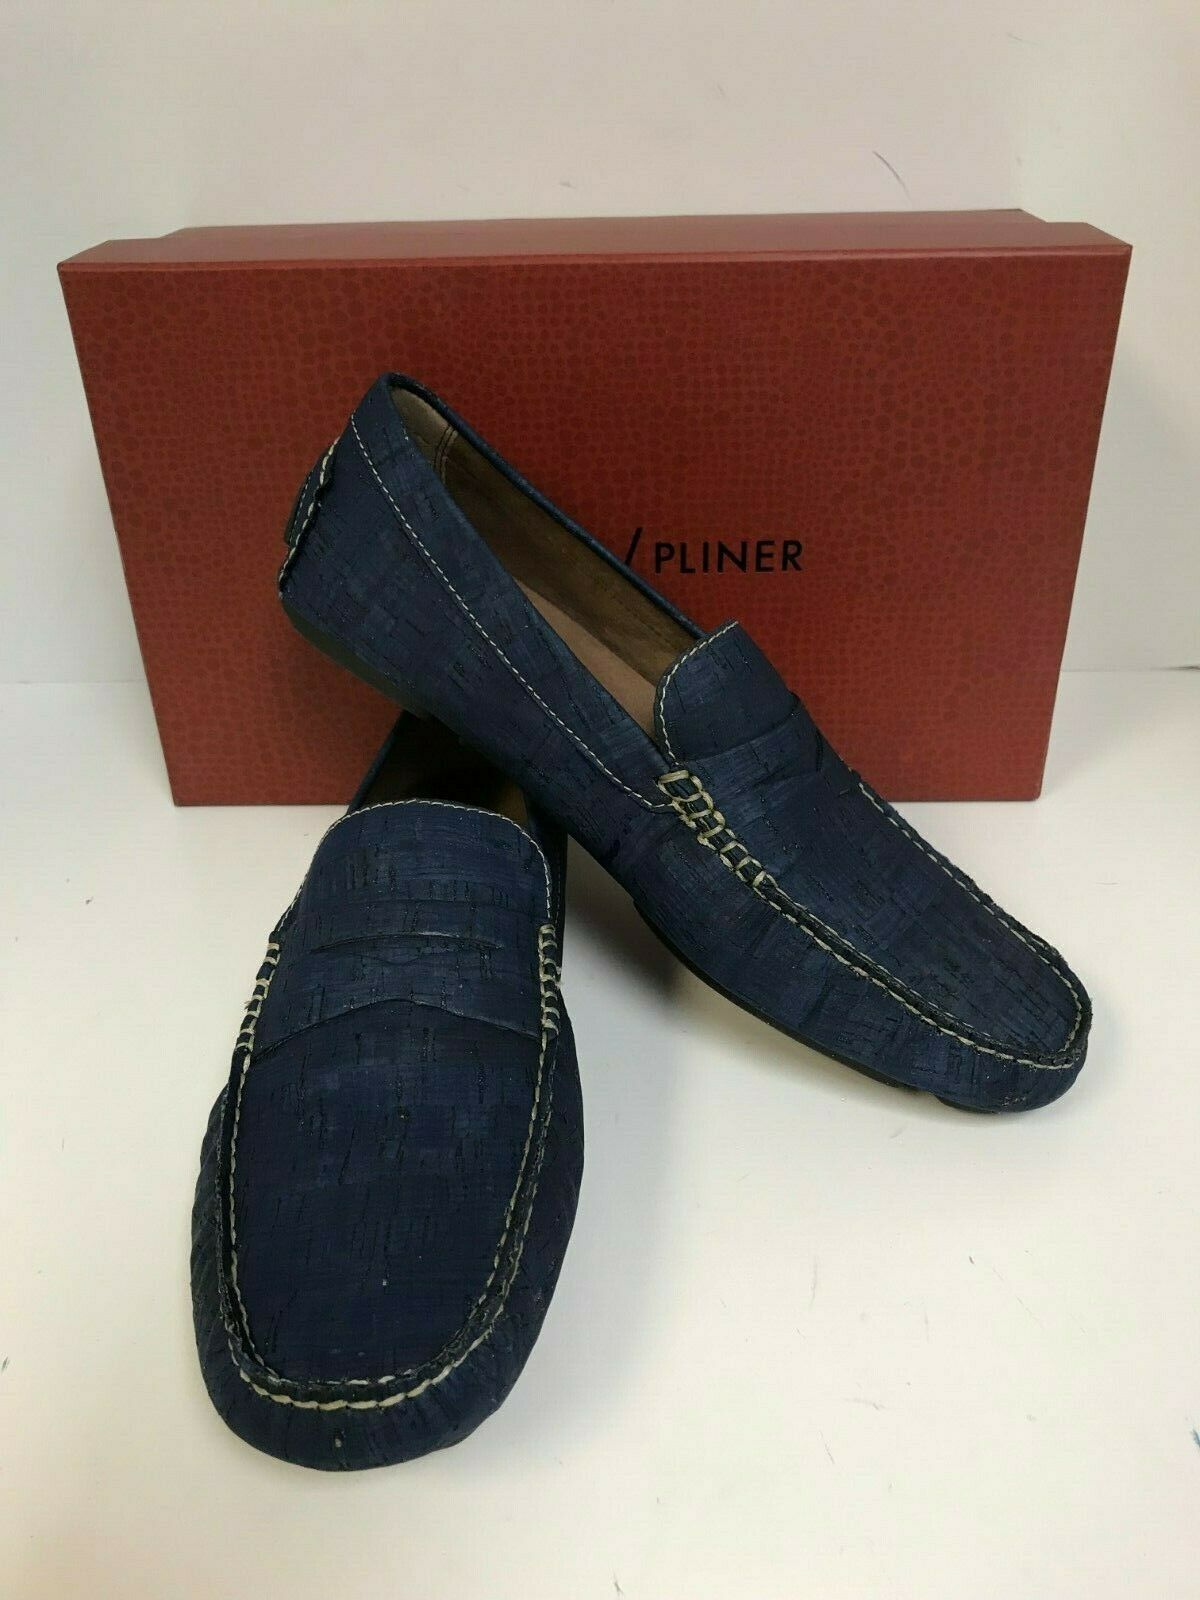 Donald Pliner Men's Vinco5-CL Navy colord Cork Leather Penny Driver